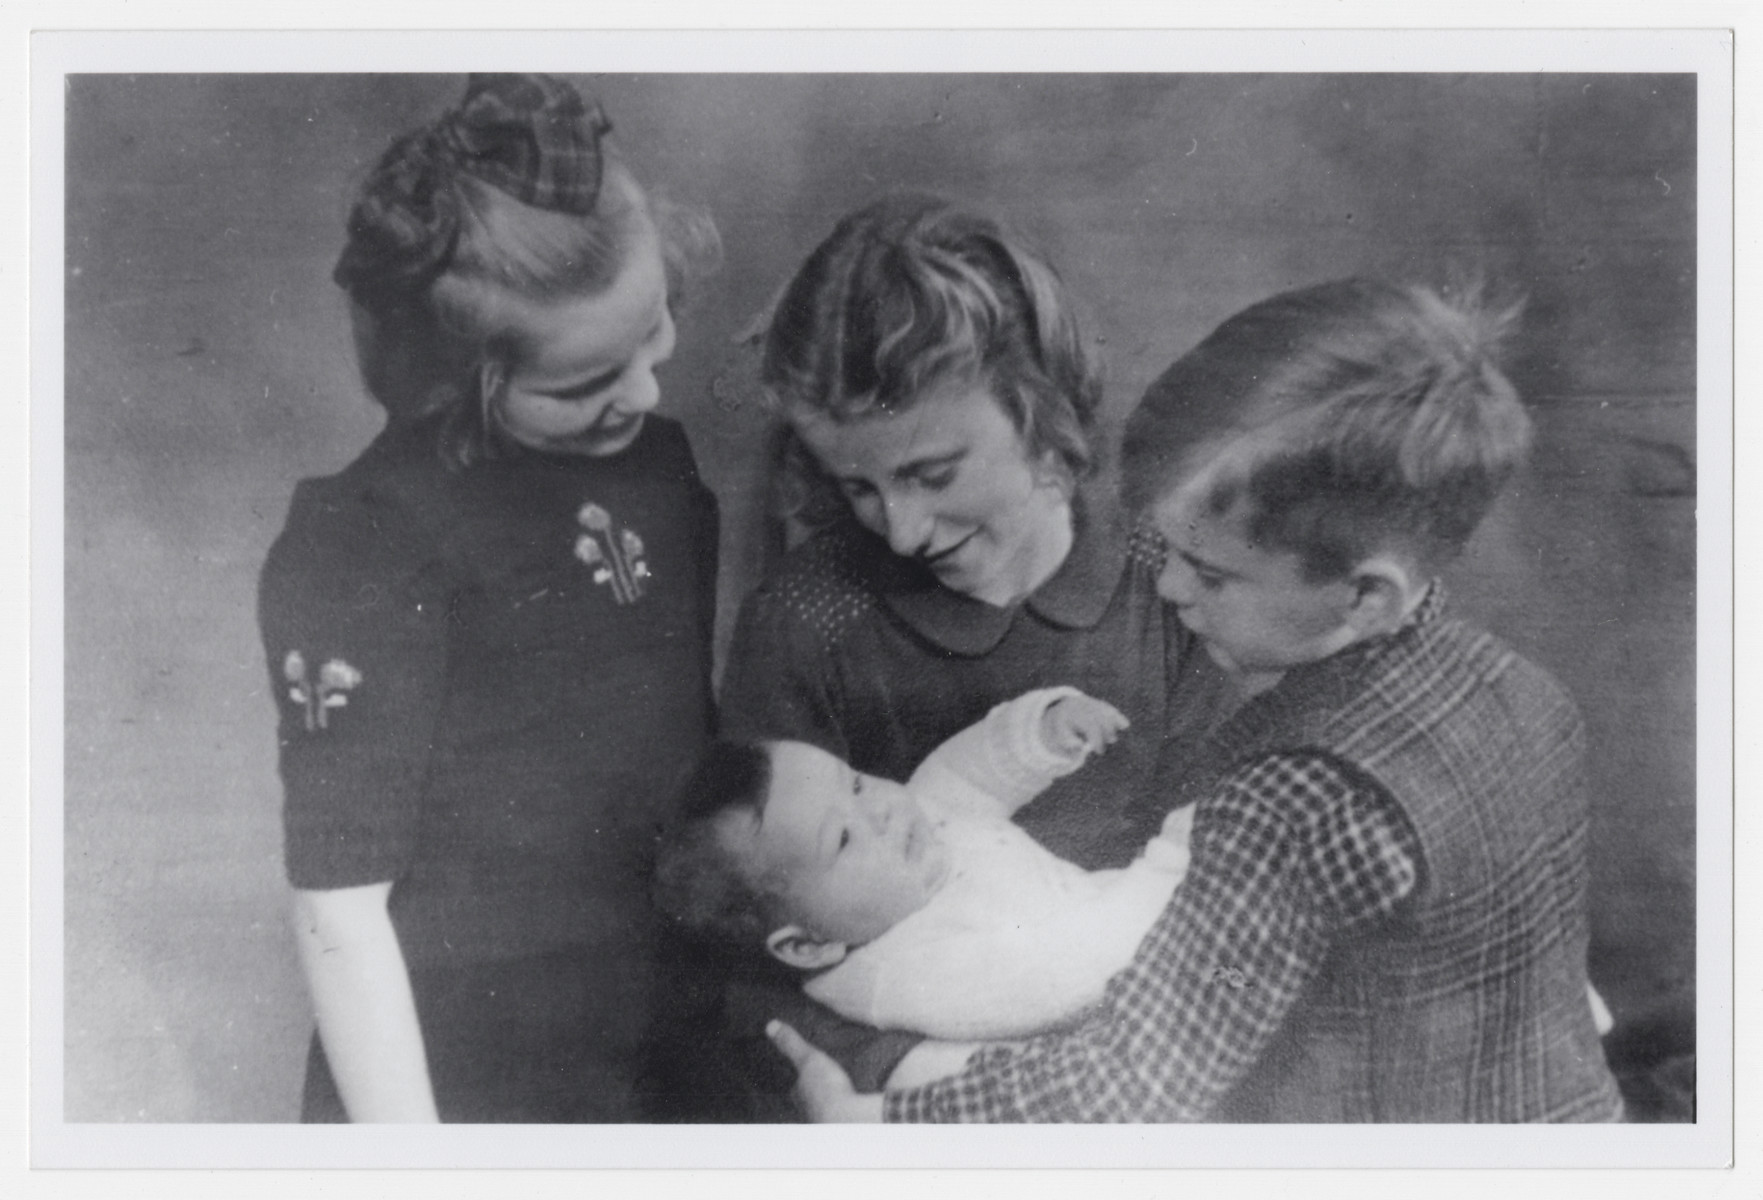 Aaron Jedwab, a Jewish infant in hiding as Jan Willem Herfstein, is cradled by his foster siblings Dick, Janni and Ina Wikkerink.